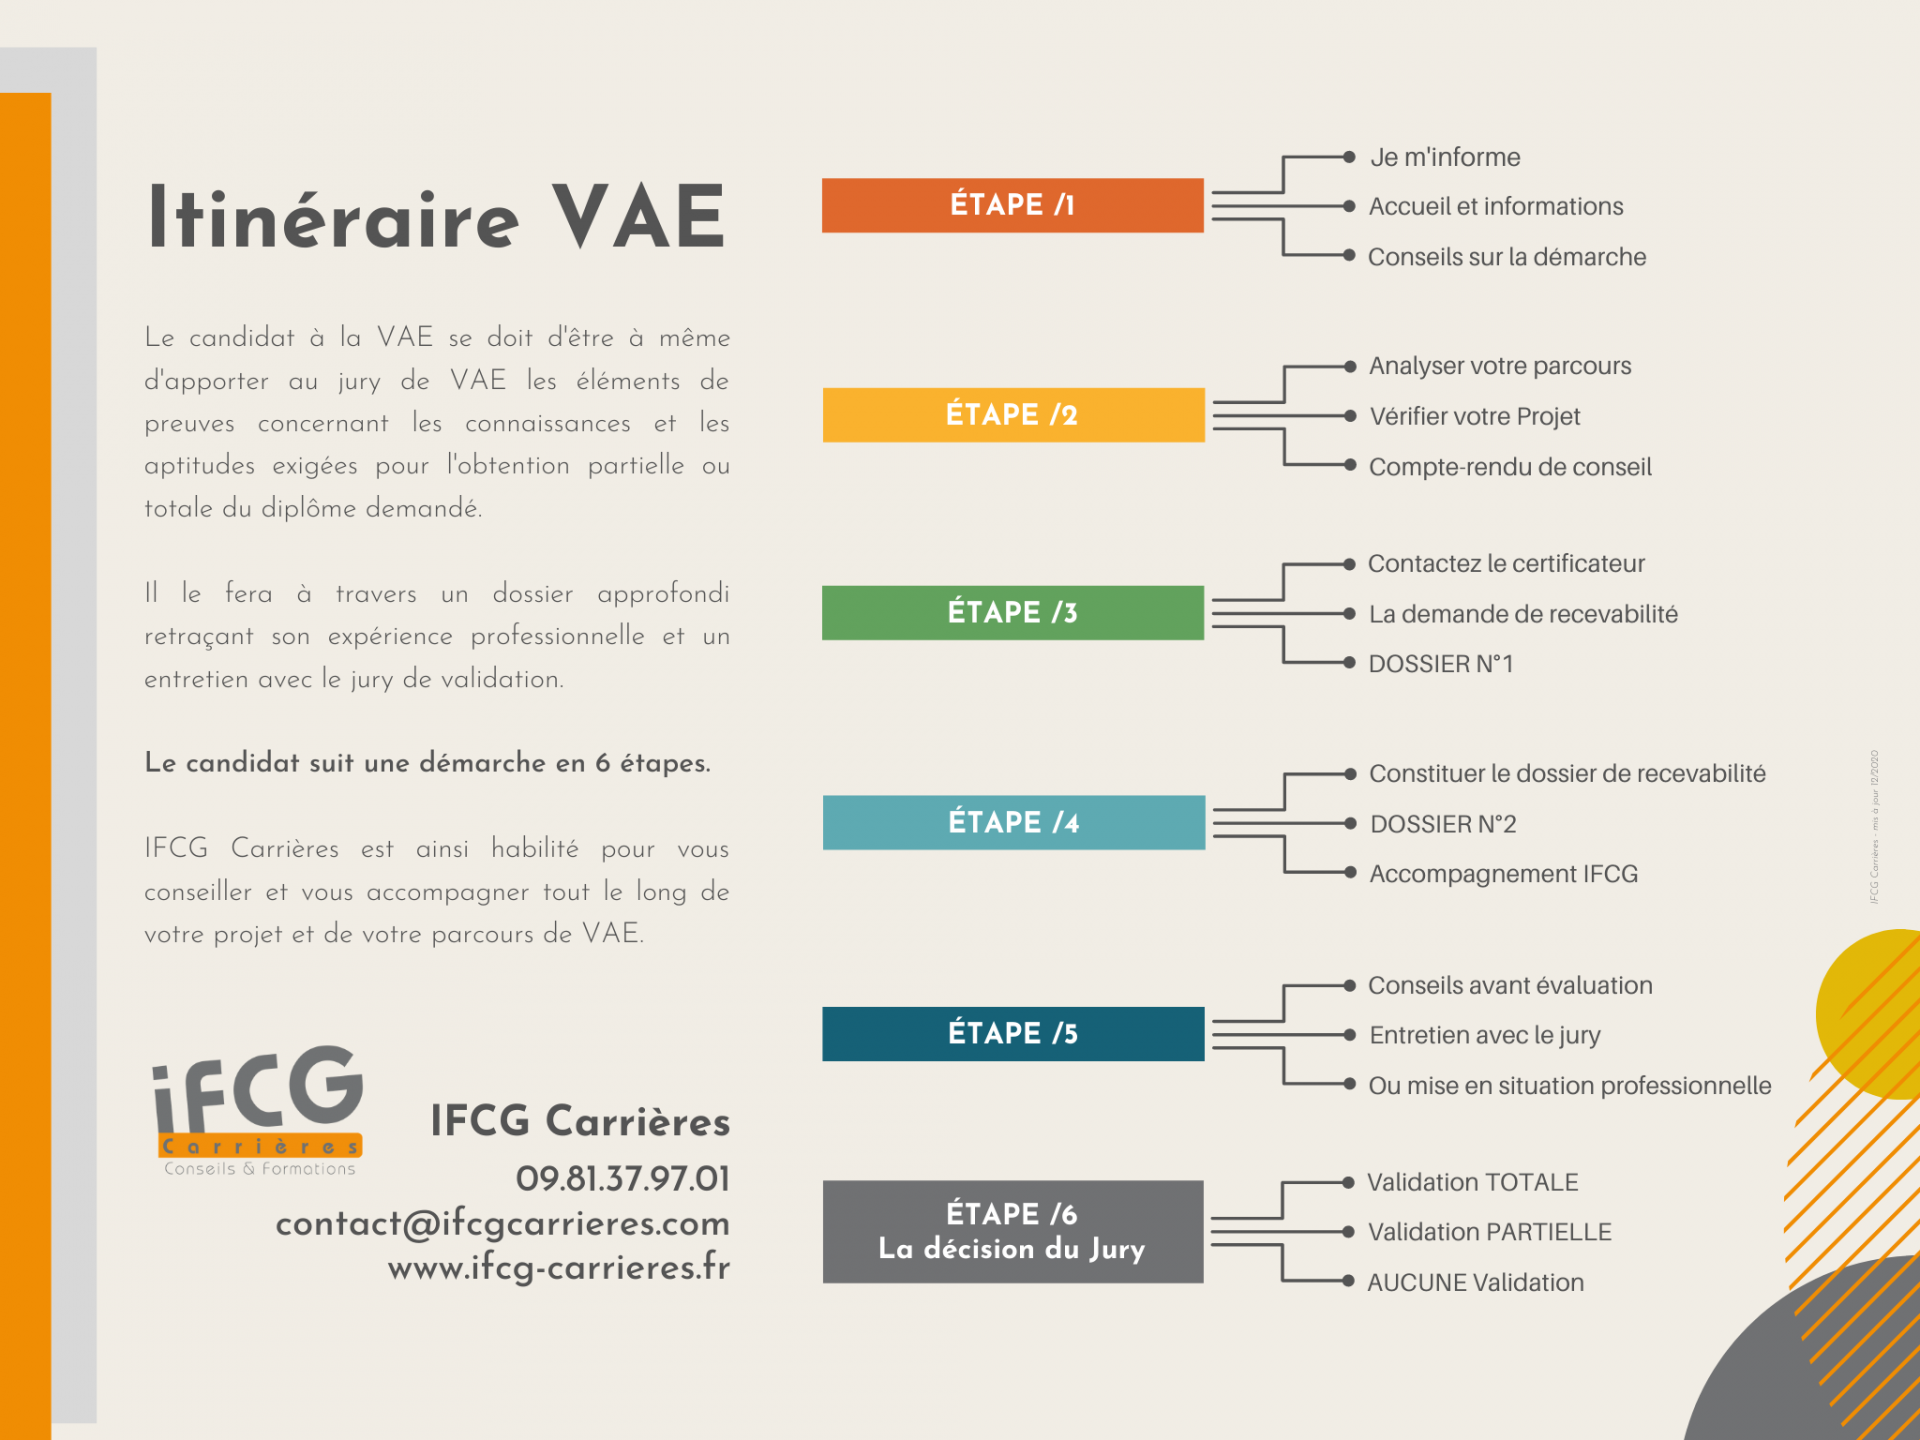 Itineraire VAE IFCG Carrieres_2020